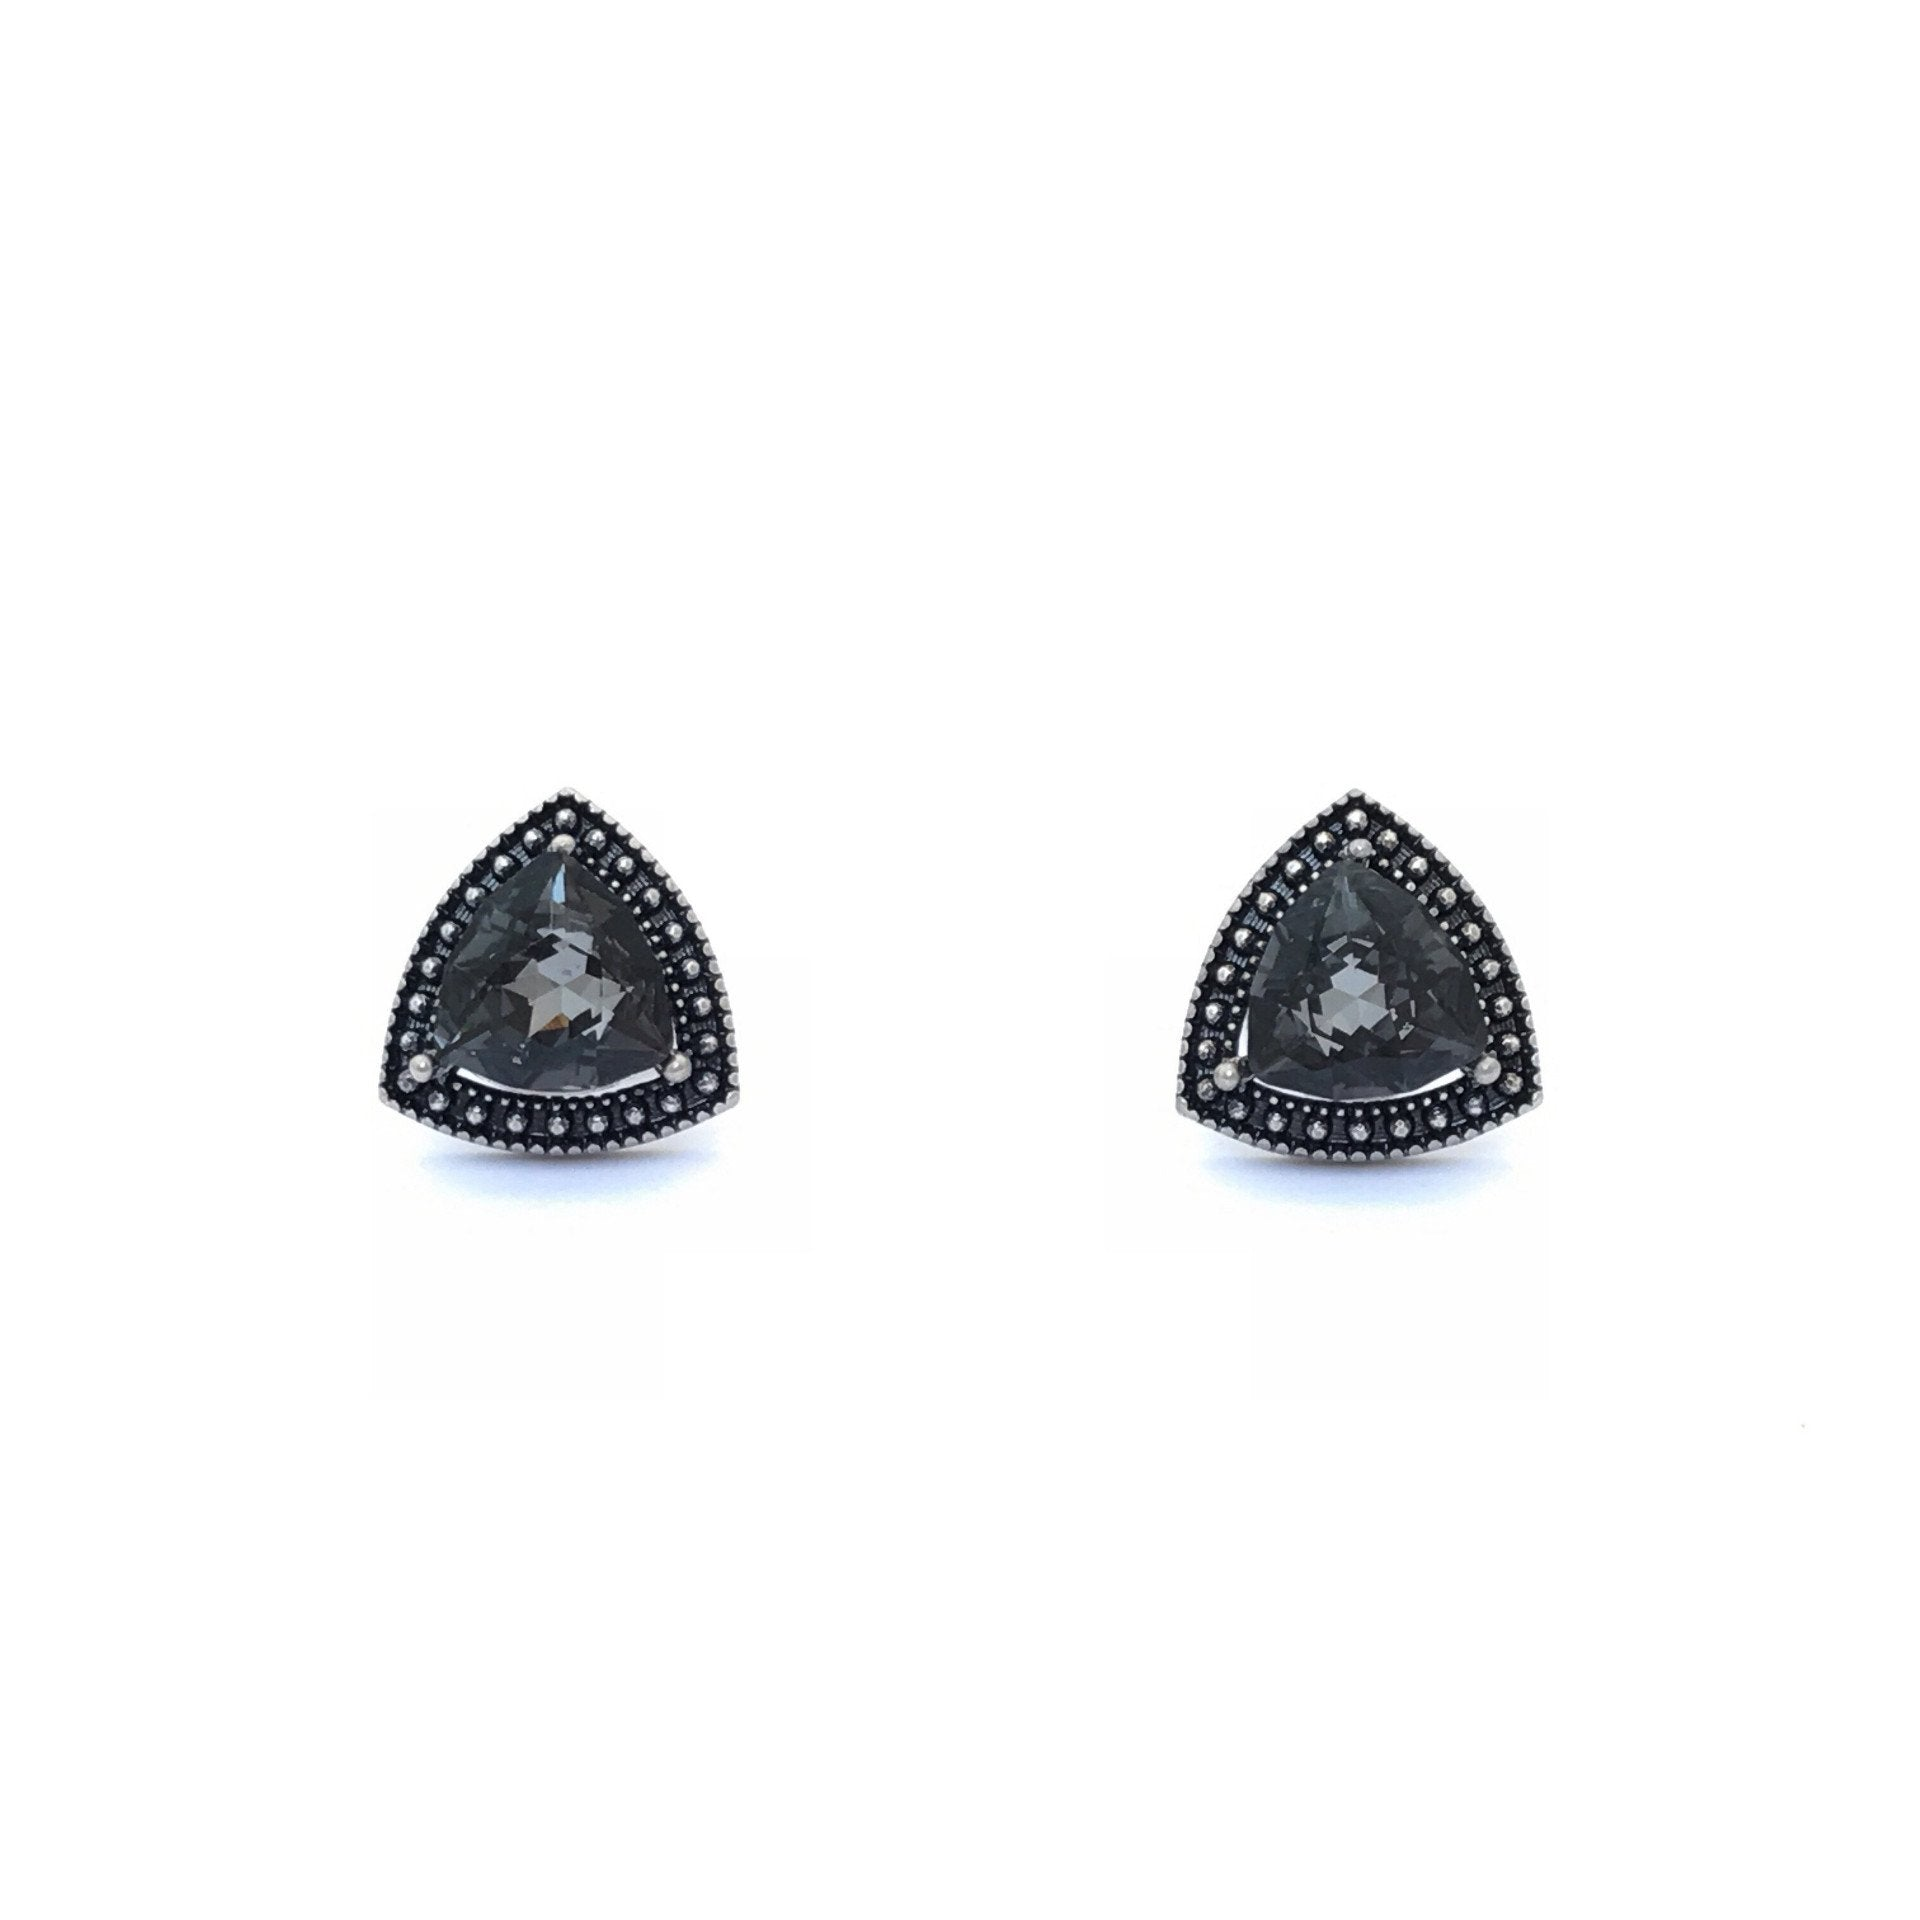 earring stud masdings image silver black main crystal diamond sinaa item baker ted earrings